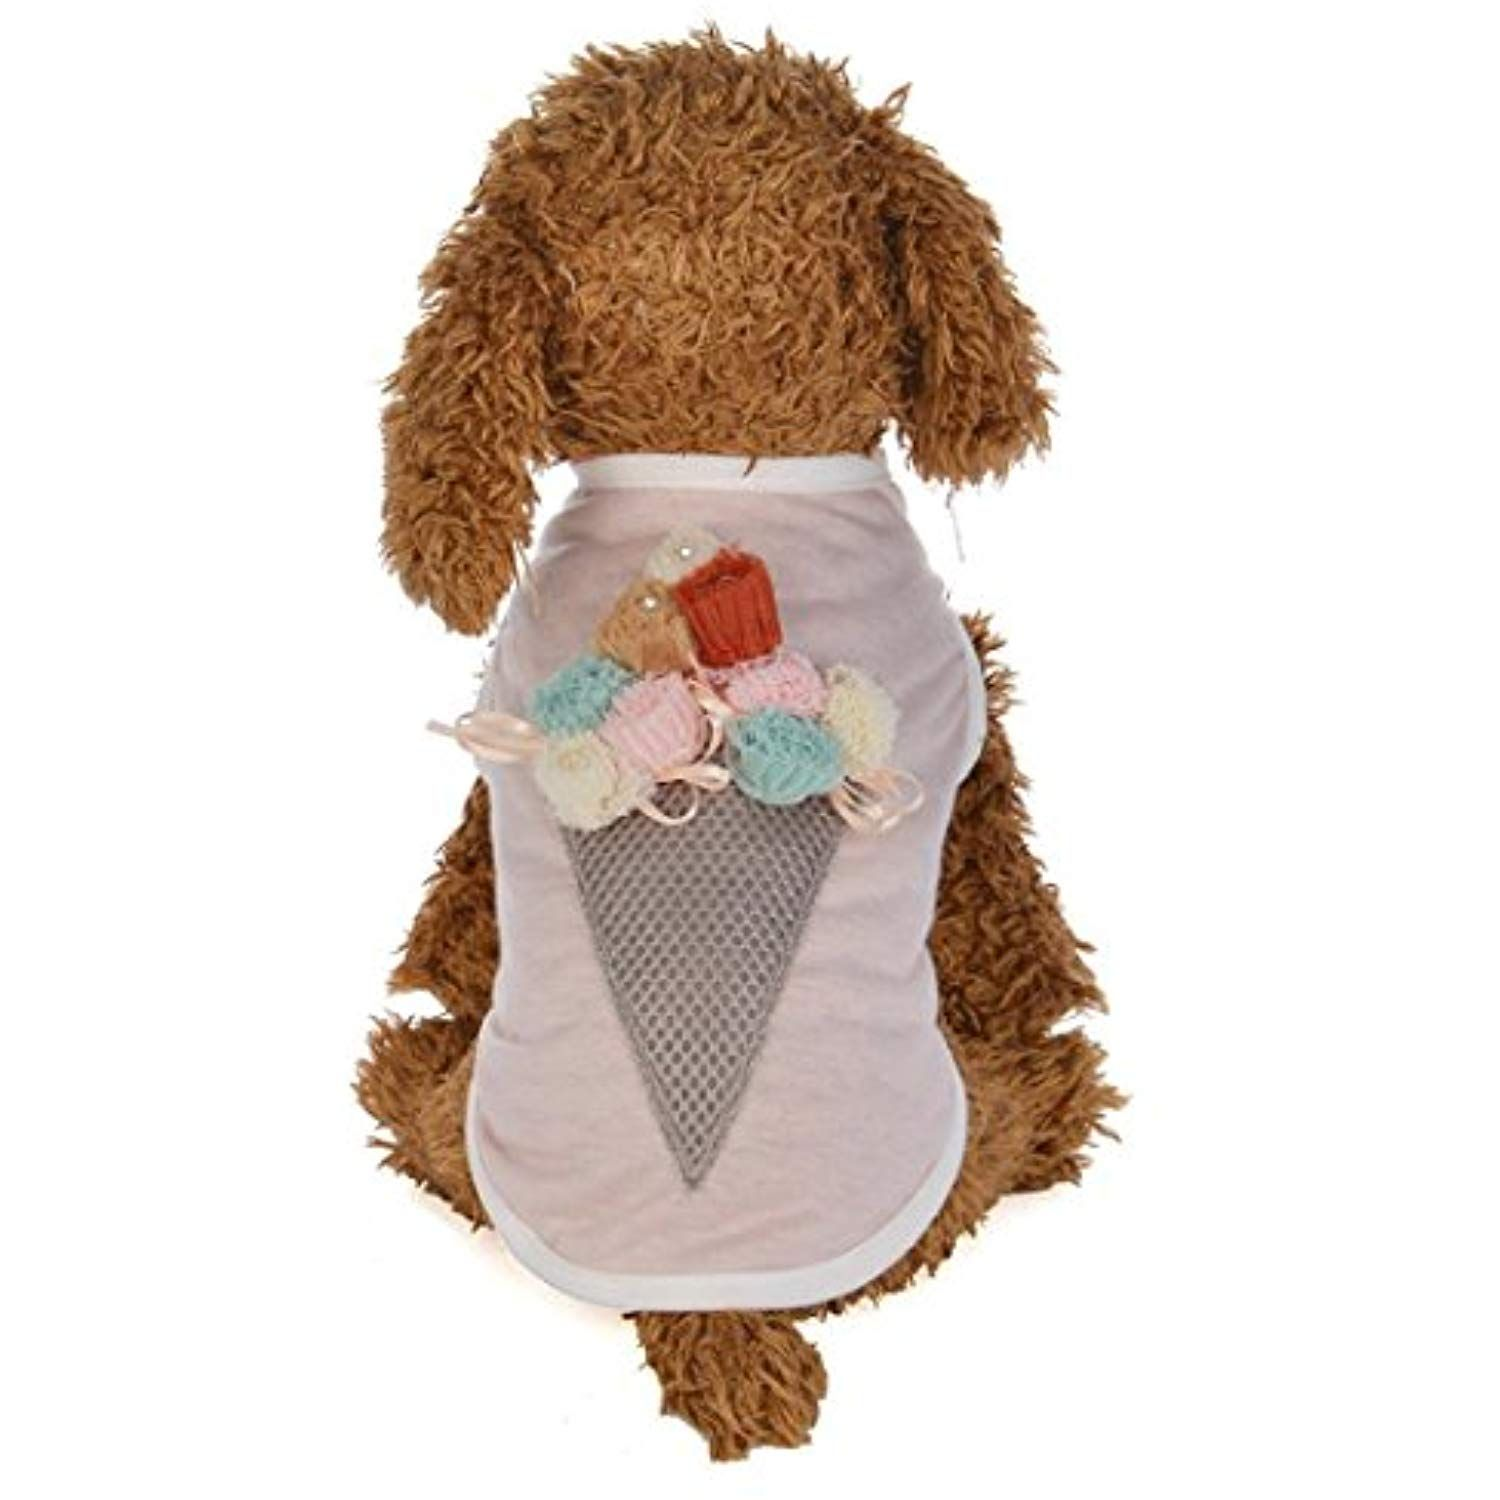 b0f491d025c6 Letdown Puppy Clothes, Hot Sale Spring and Summer Ice Cream Cone Vest Dog  Costumes Pet Clothes *** See this great product. (This is an affiliate  link) # ...